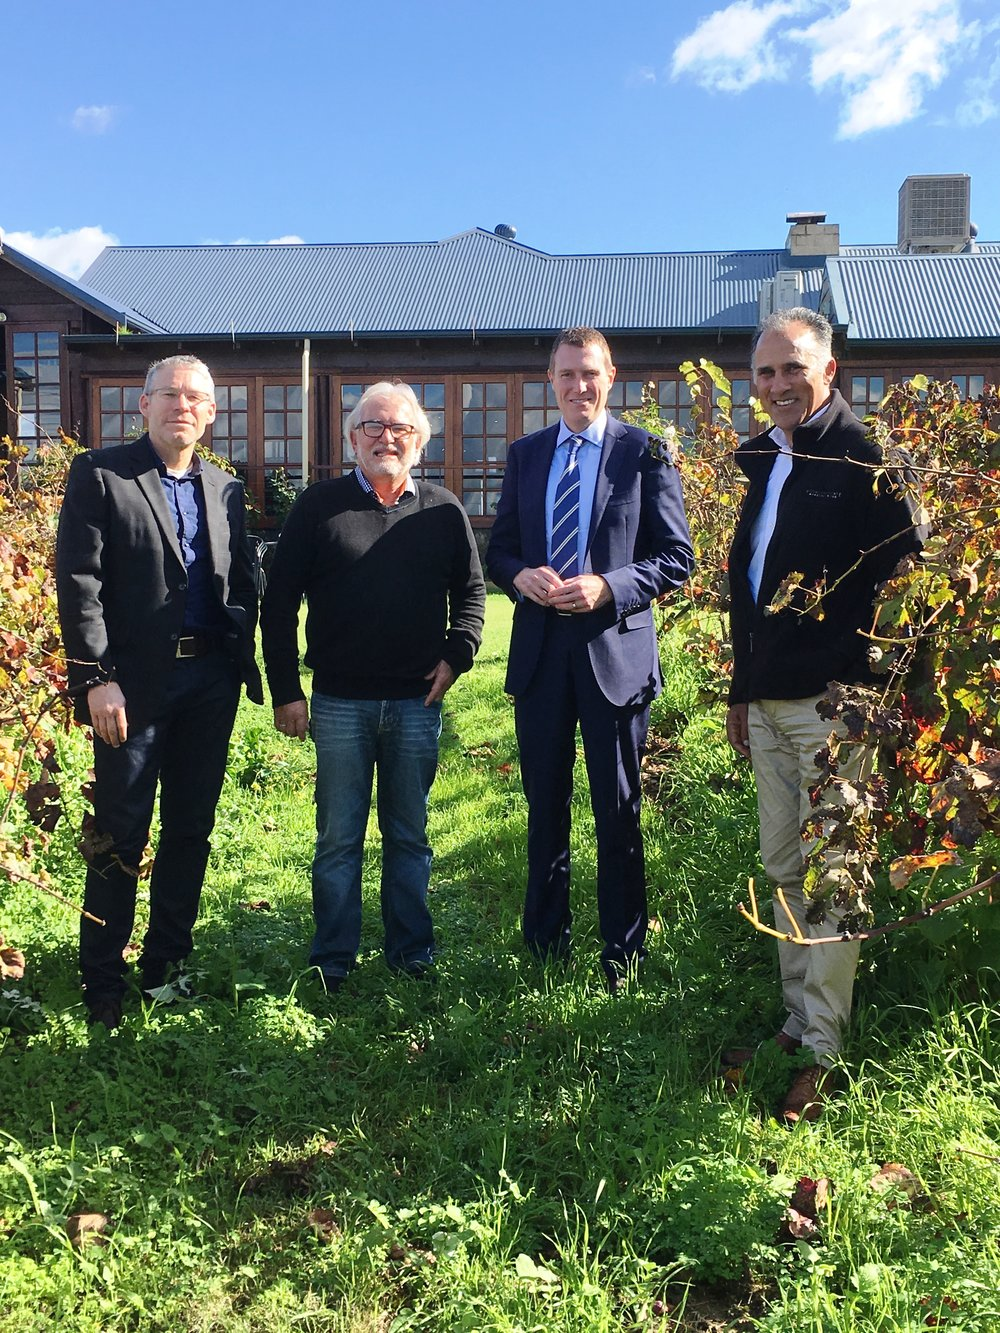 From left to right Larry Jorgensen, CEO of Wines of WA; Barry Scrivenor, owner of Black Swan Winery; MHR Christian Porter; Chris Furtado, Wines of WA Board Member and GM of Voyager Estate in Margaret River.  Photo taken at Black Swan Winery, 8600 West Swan Road, Henley Brook.